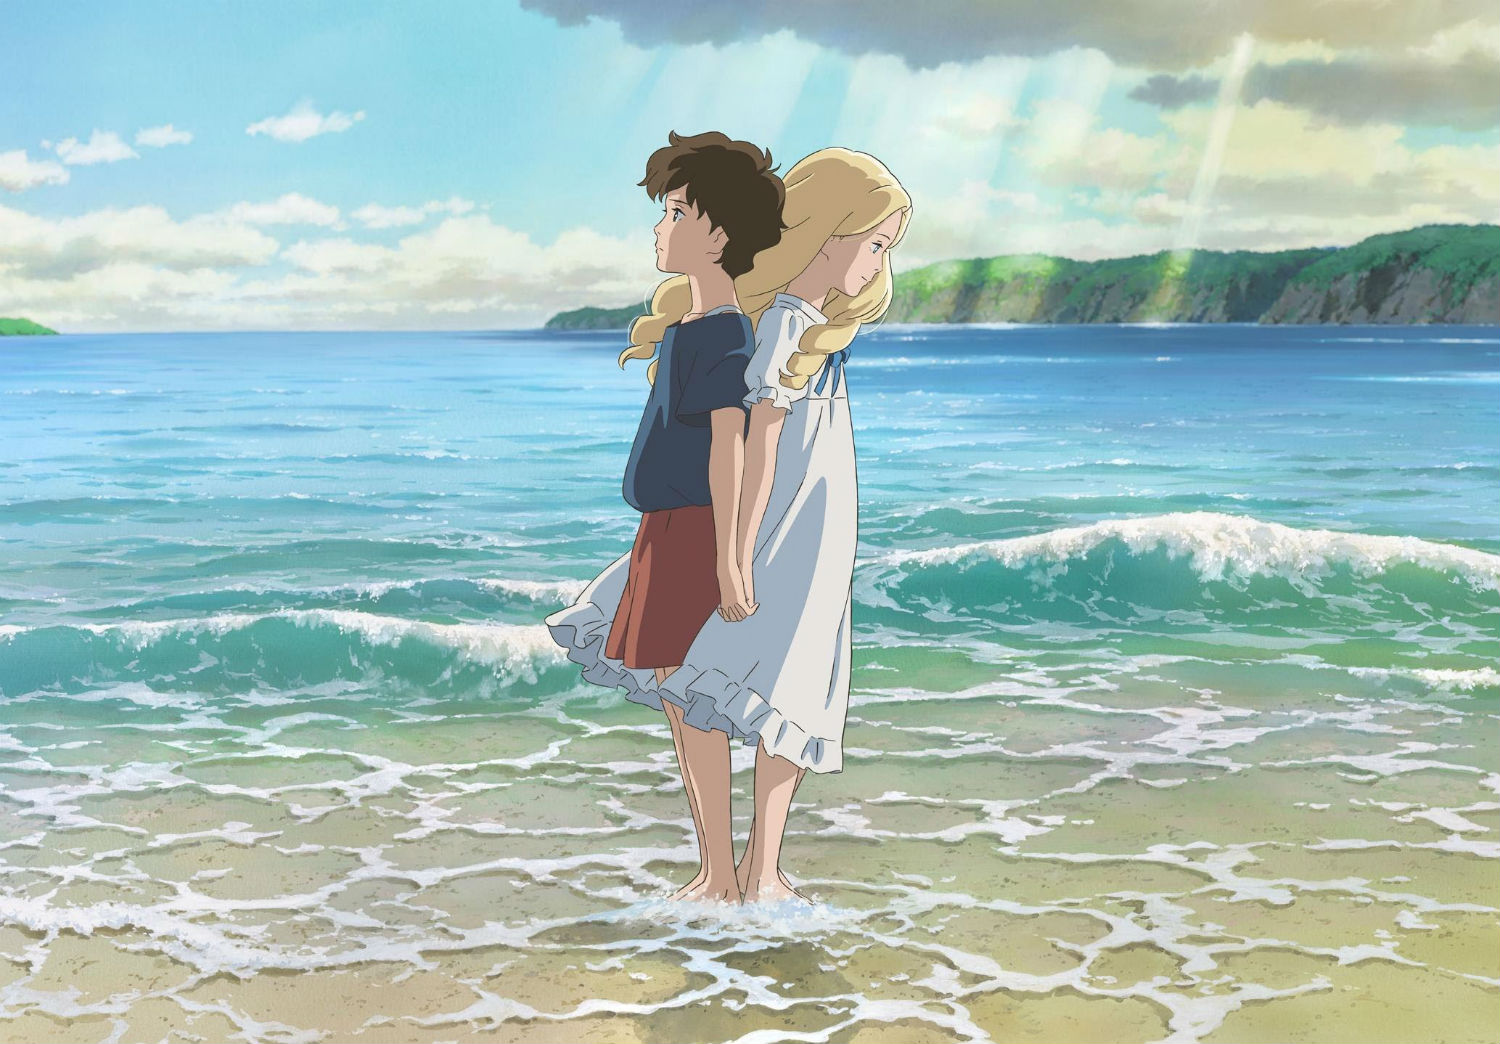 when marine was there studio ghibli ocean beach